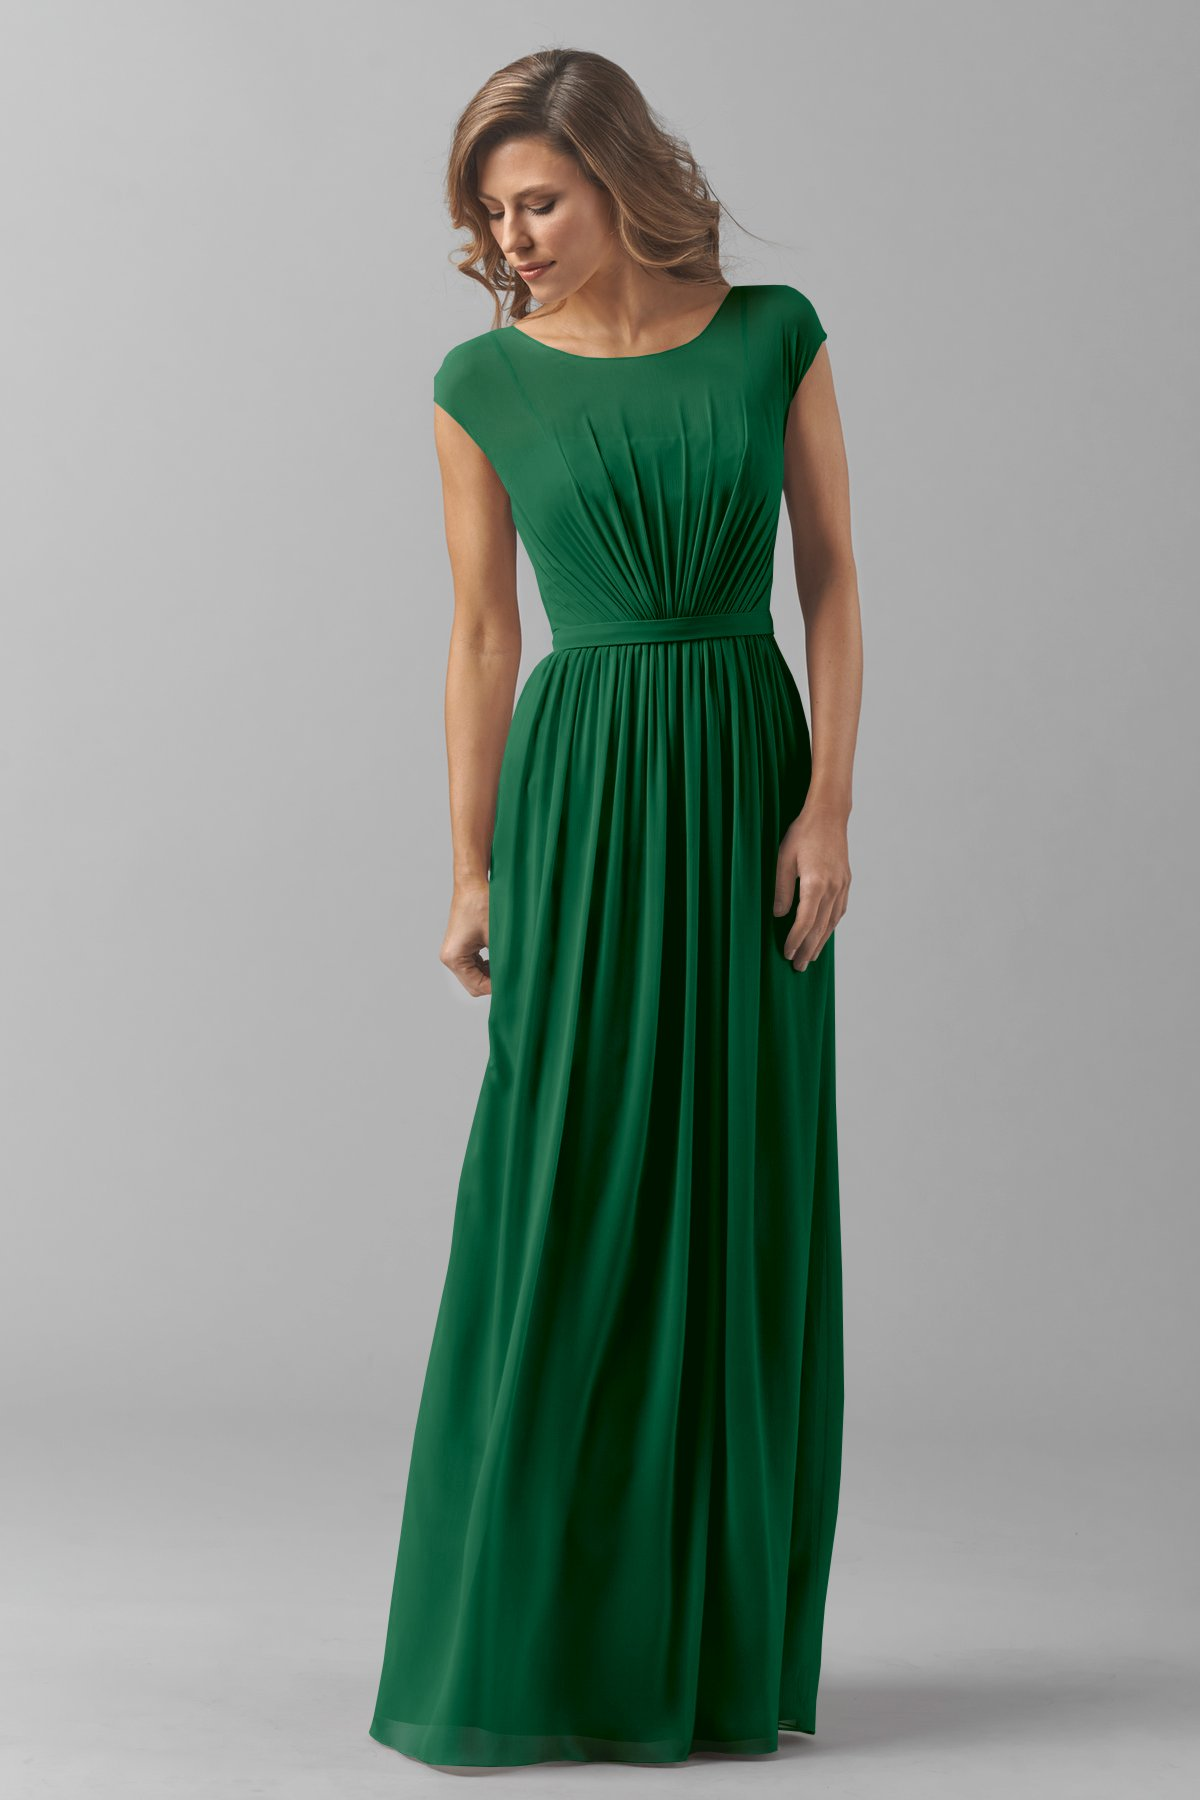 Emerald Green Mother Bridesmaid Dress Long